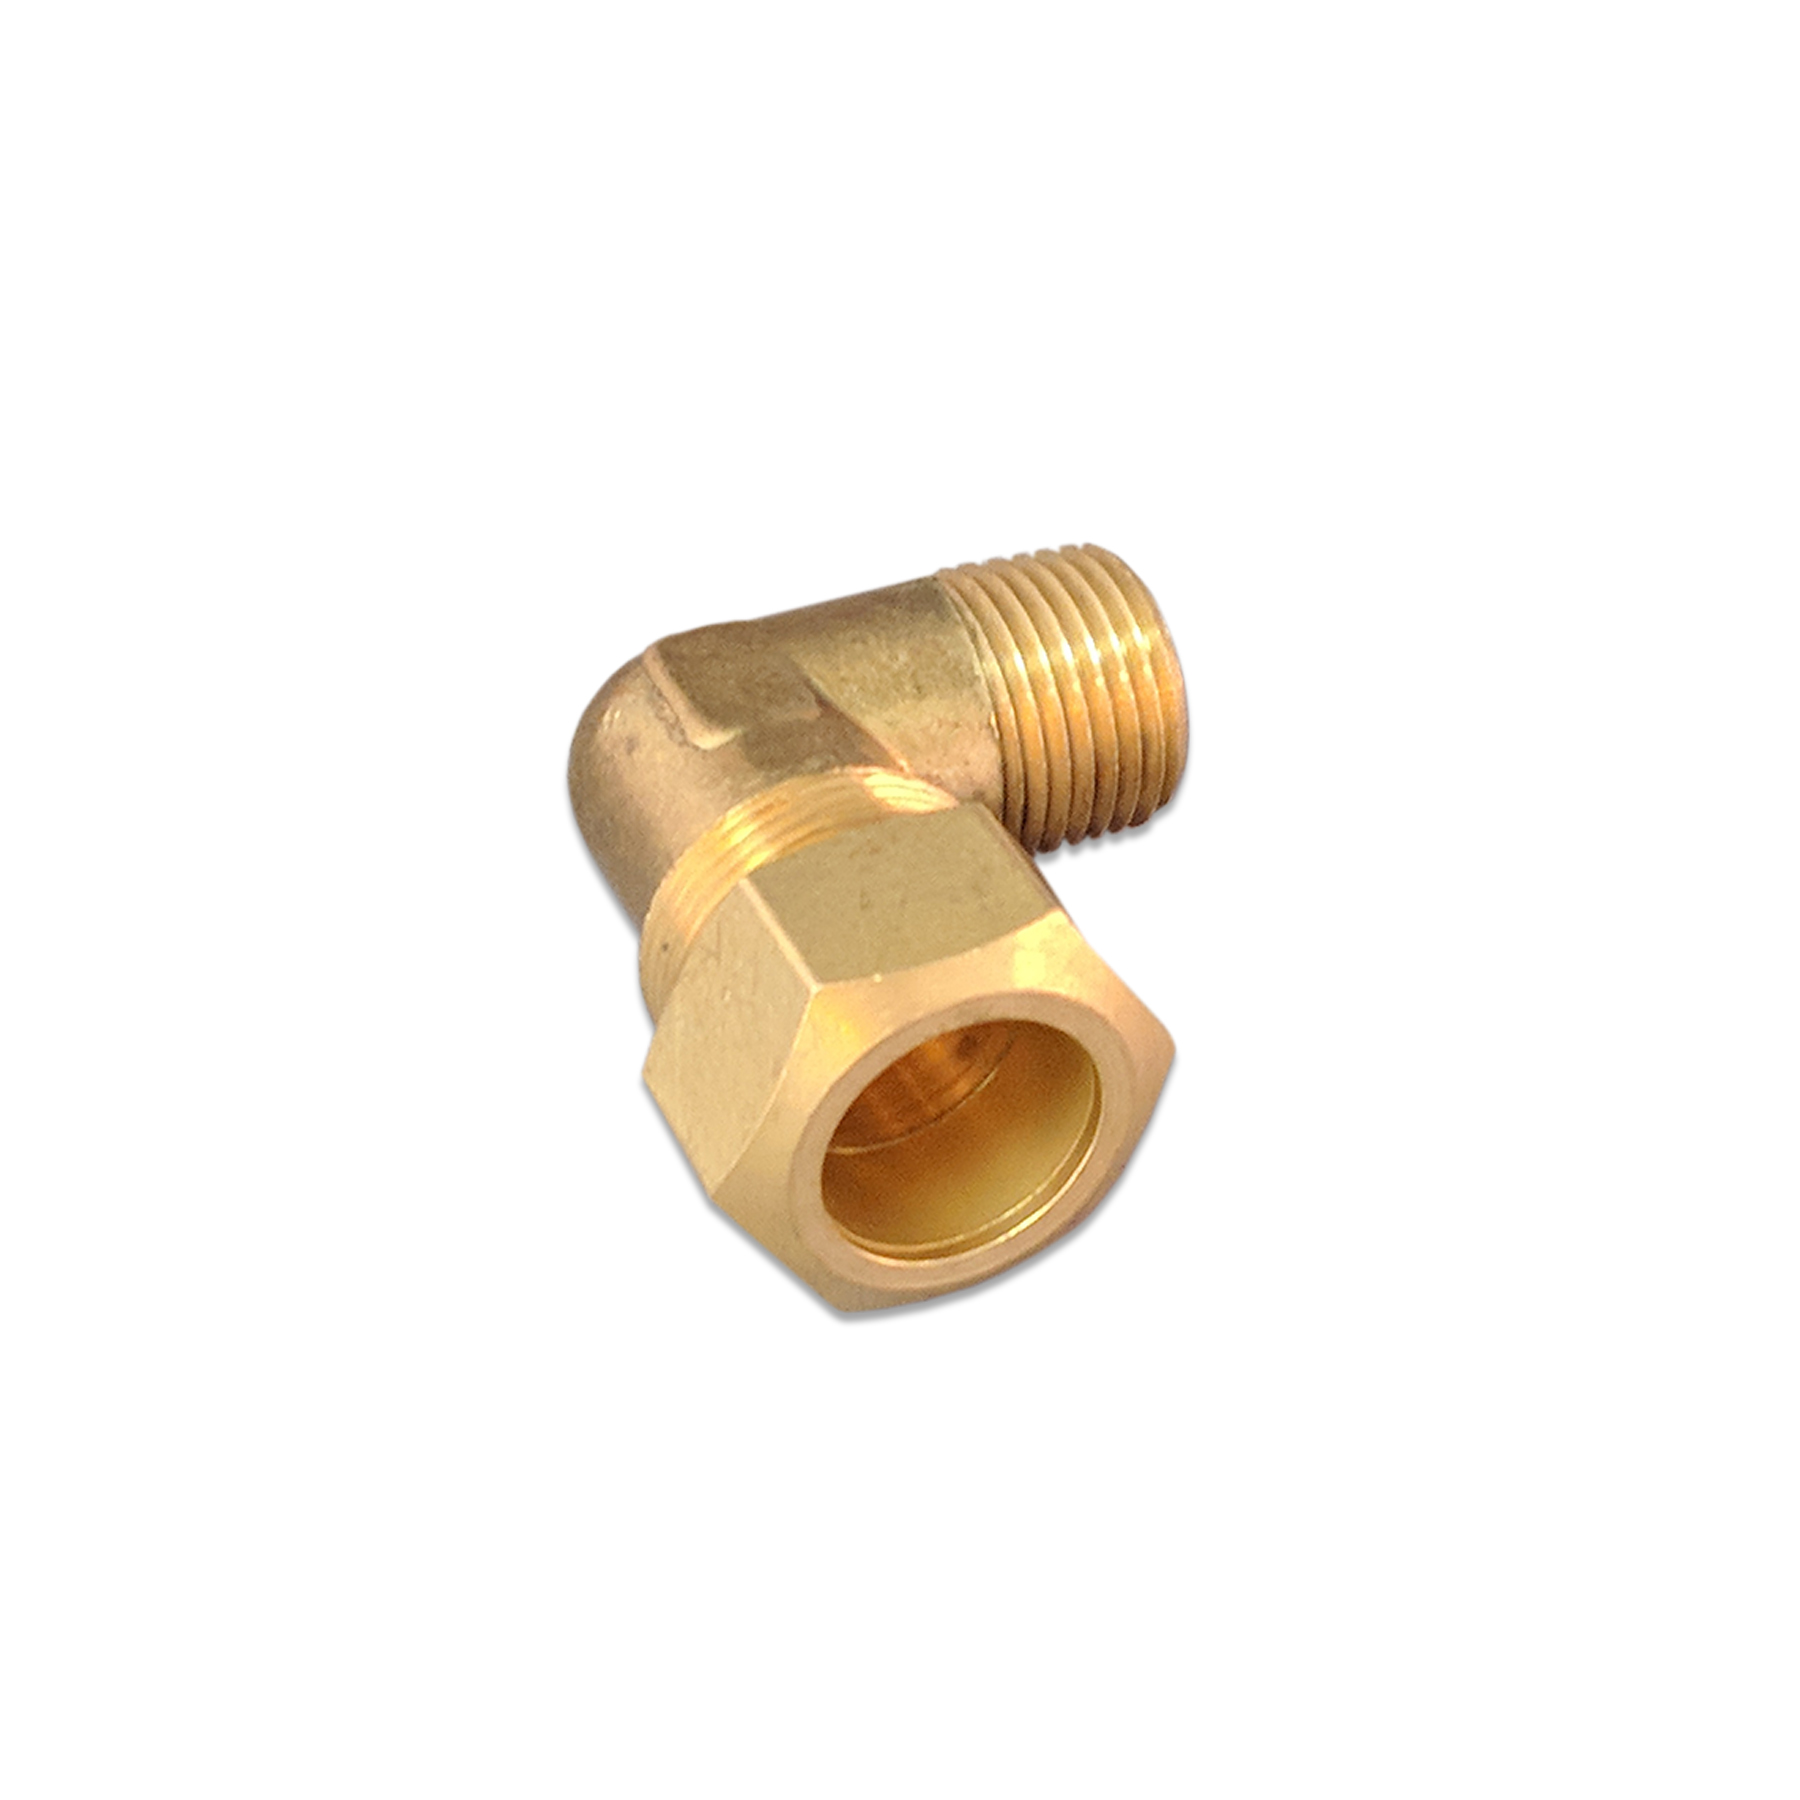 Brass 90 Degree Compression Elbow Fitting, 3/4 x 1/2